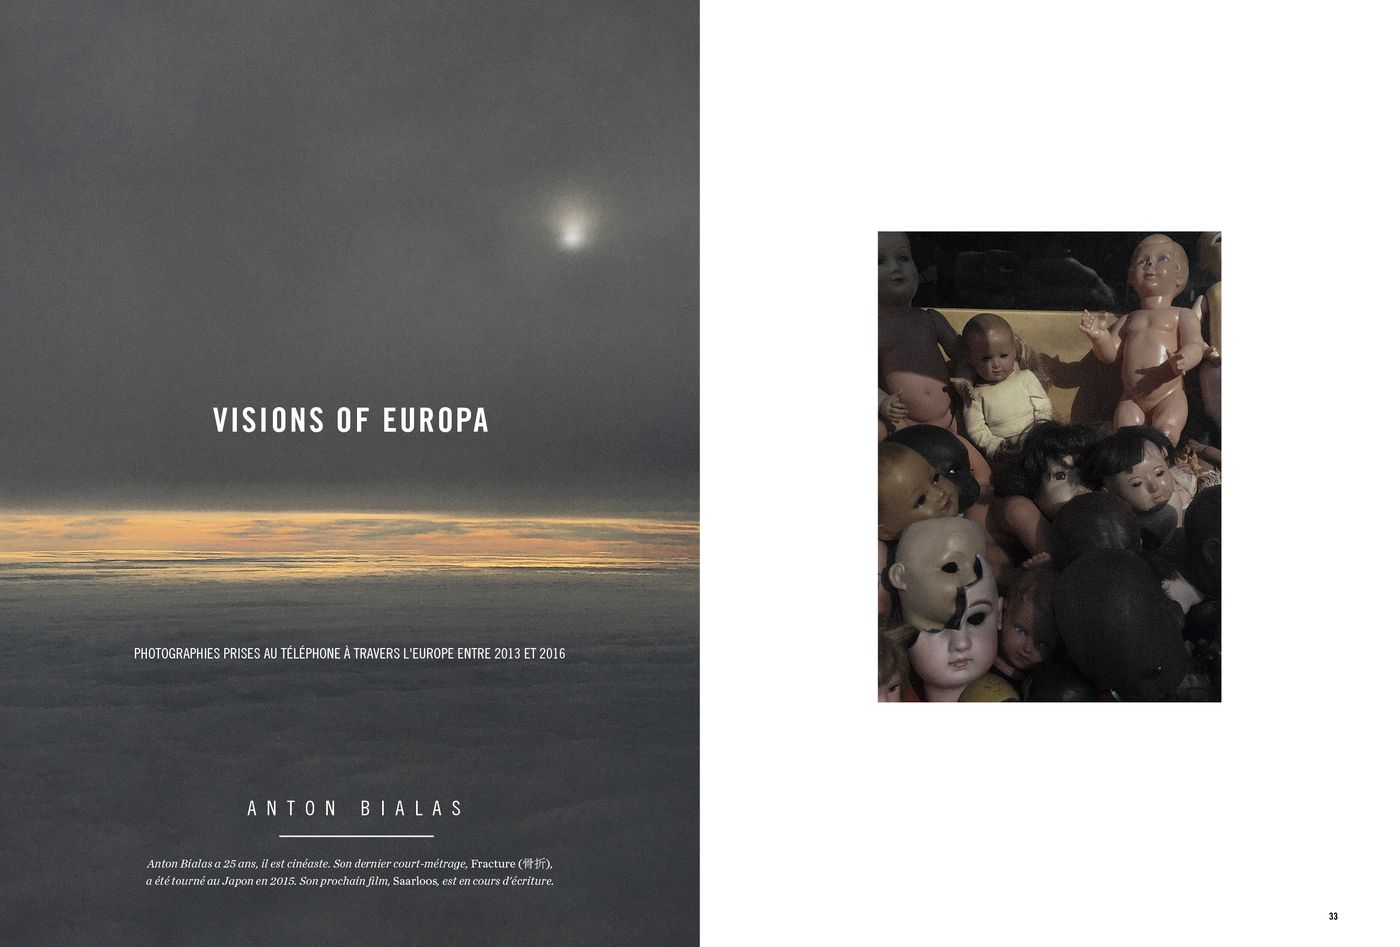 Possession Immédiate Volume 5 - Photographies d'Anton Bialas, Visions of Europa